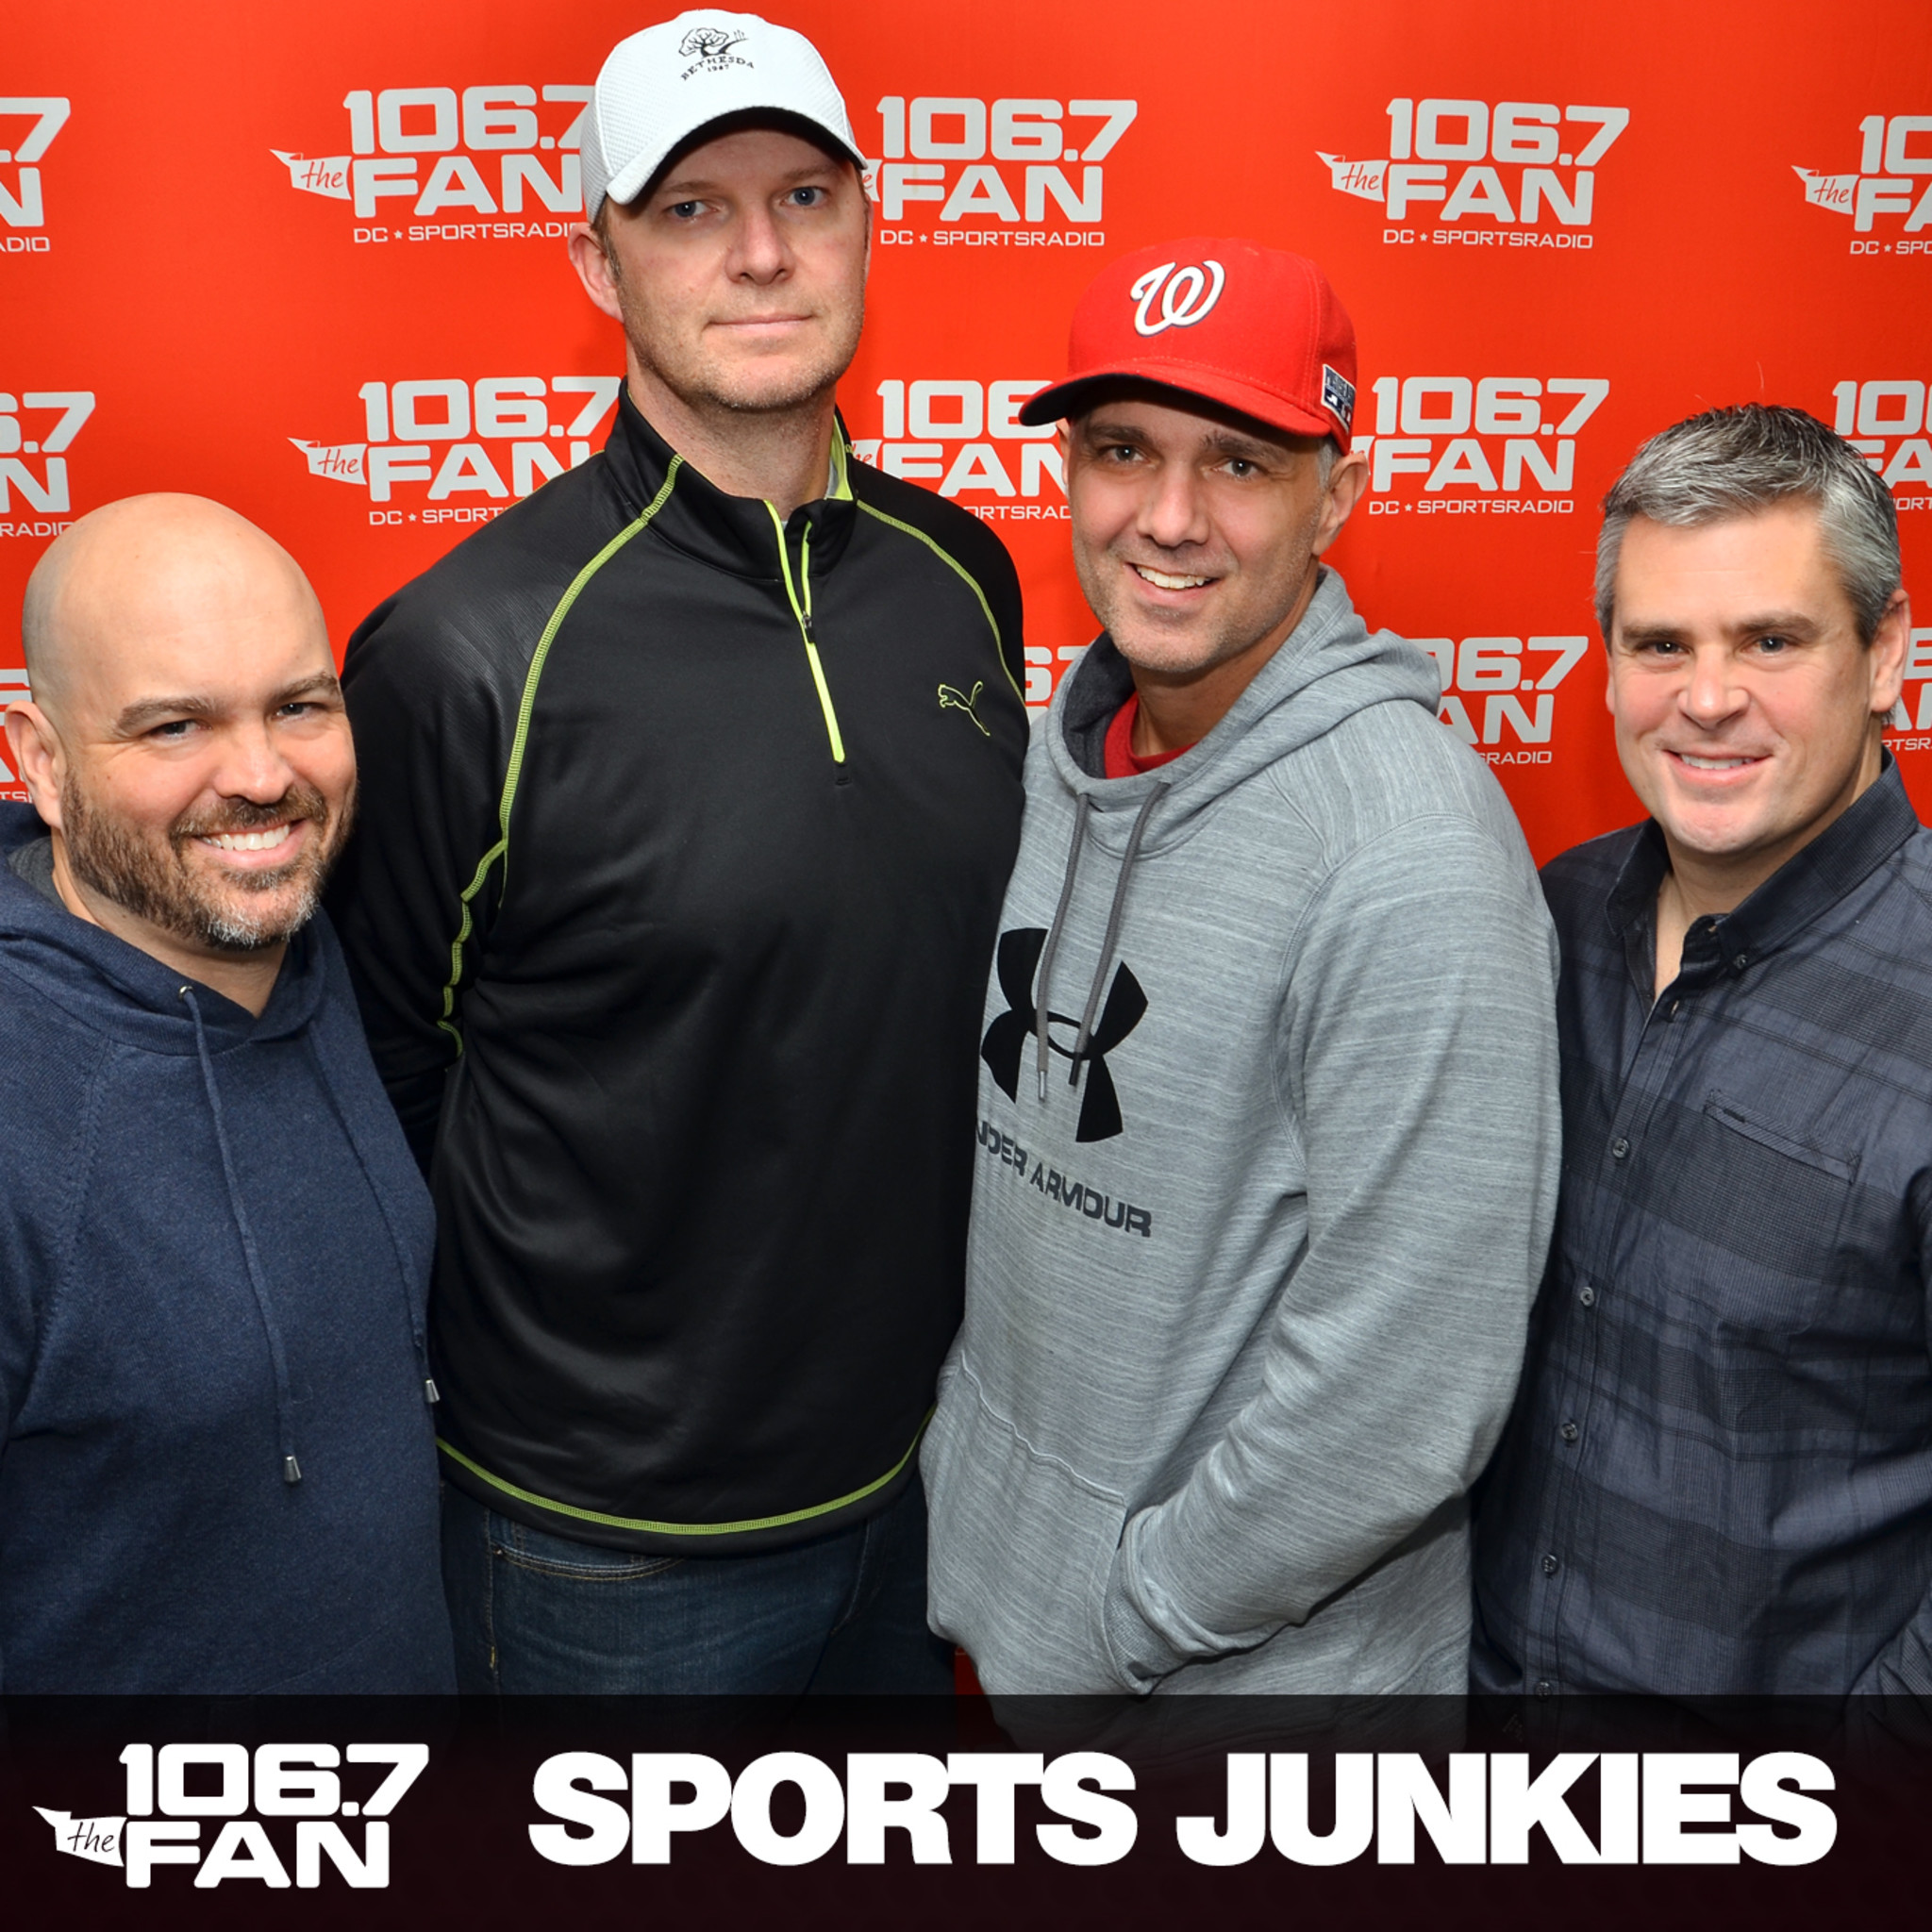 The Sports Junkies Logo